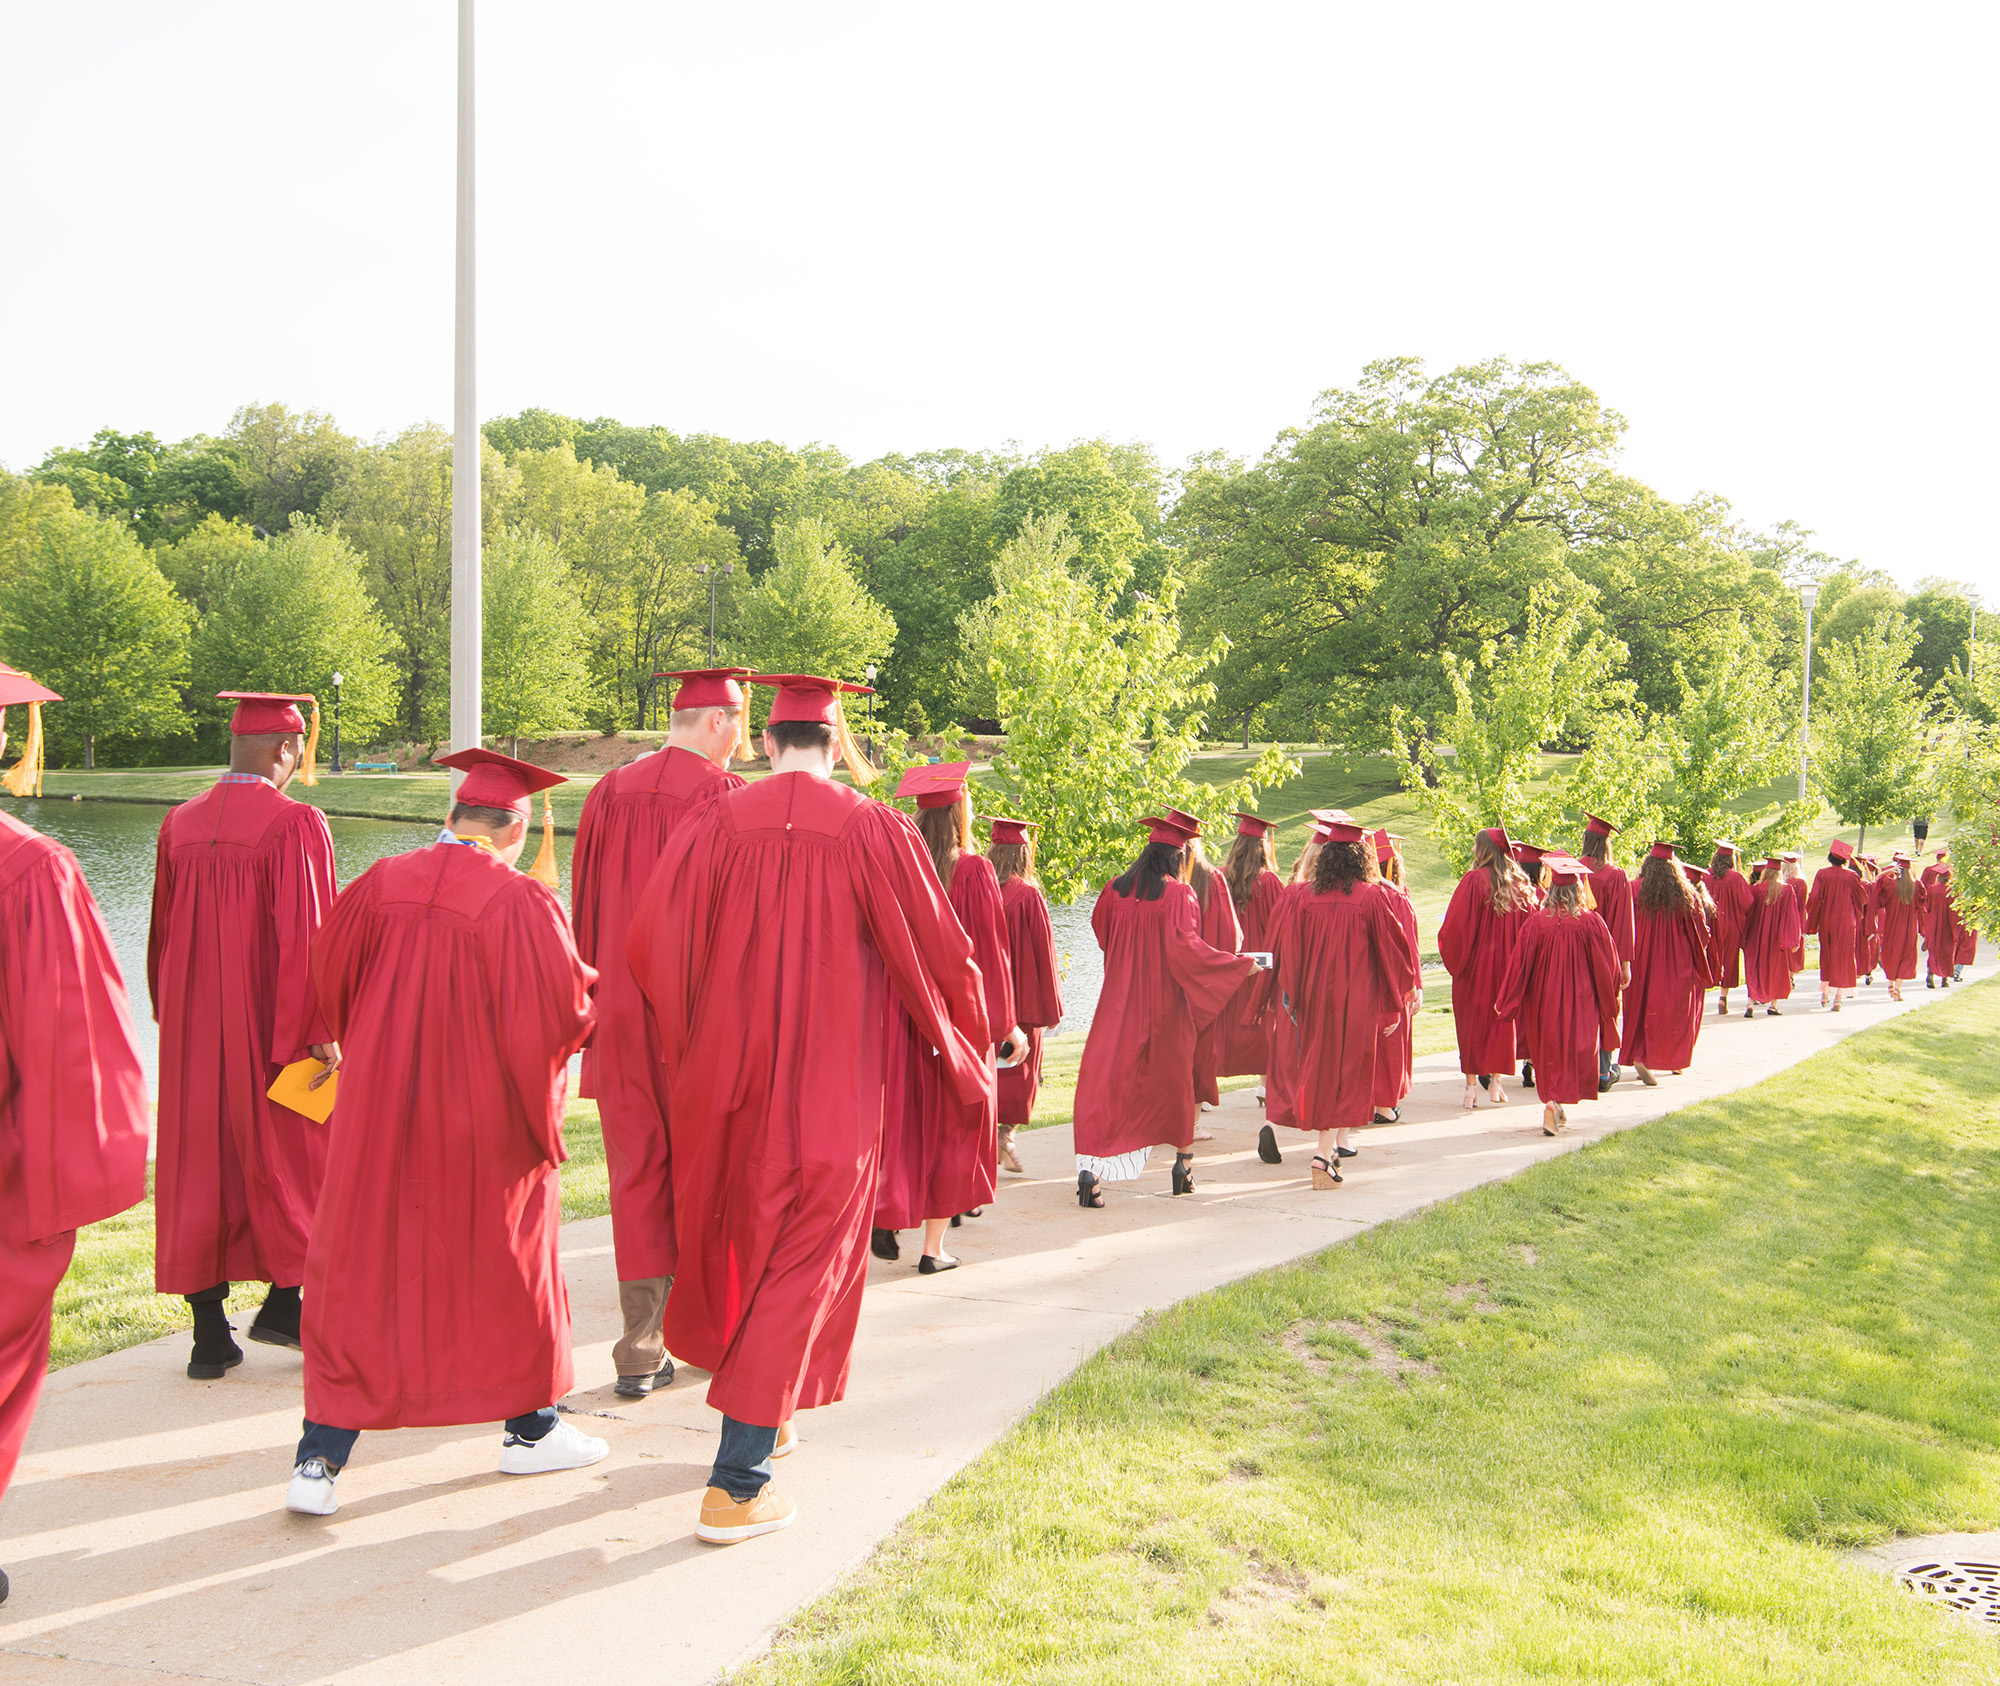 Indian Hills Community College has released the names of the students who completed their graduation requirements at the end of the 2018-19 Winter Term.